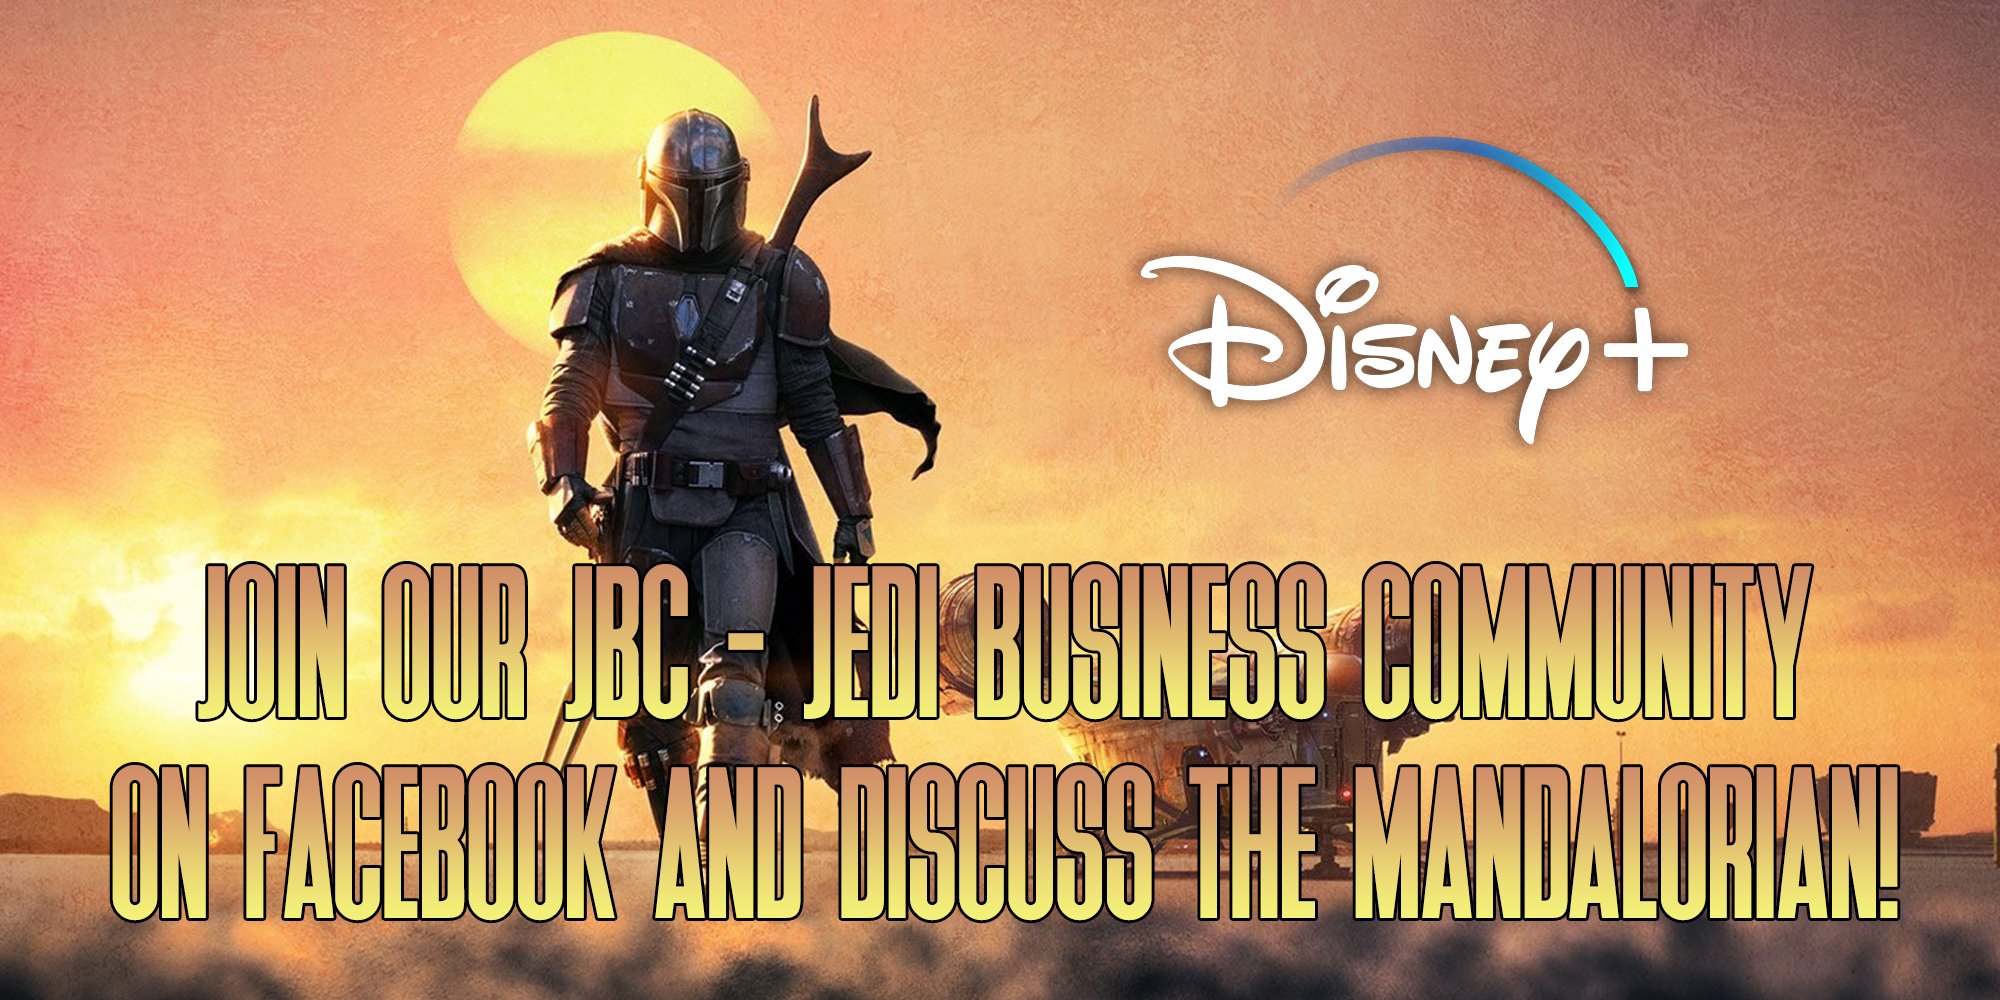 Jedi Business Community